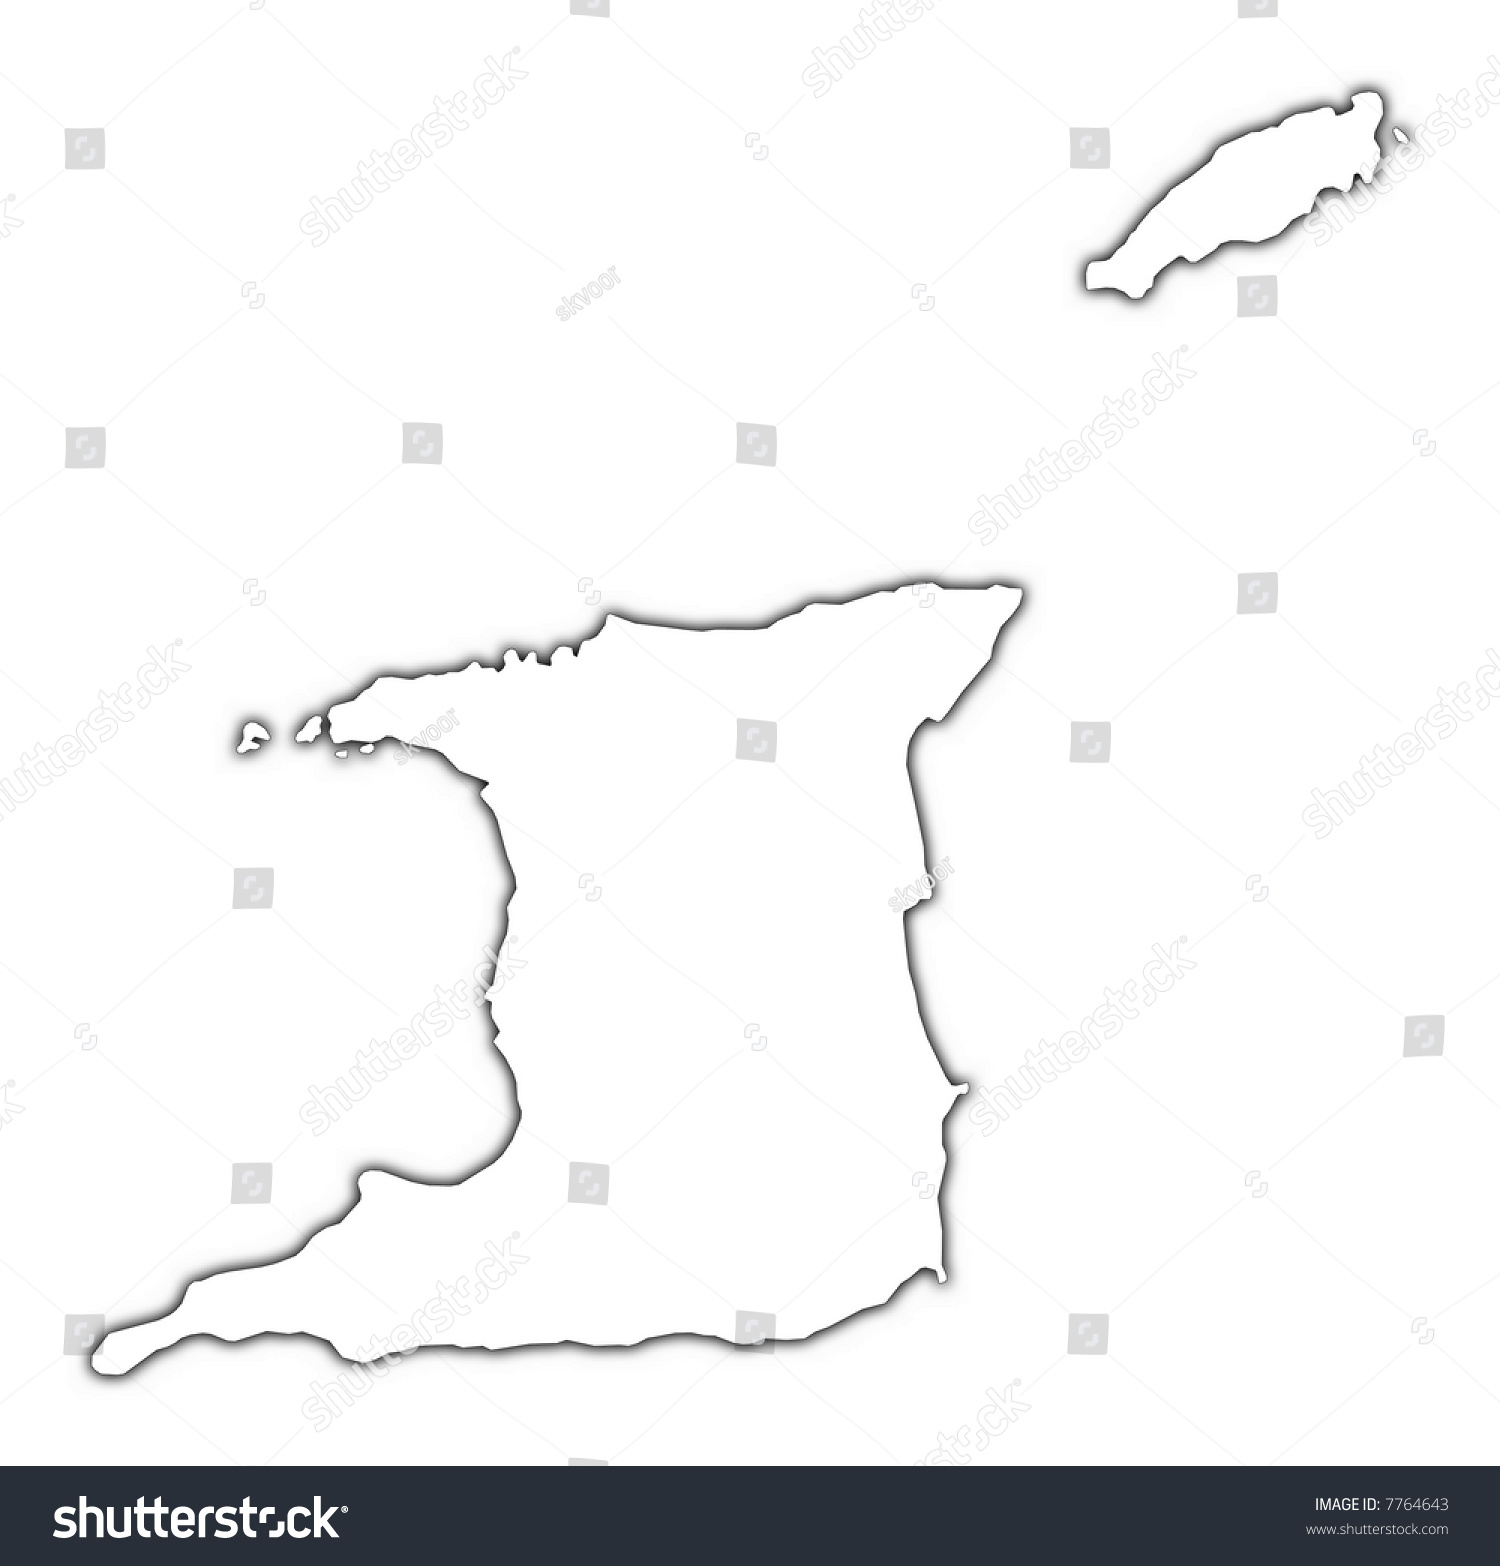 Trinidad And Tobago Blank Map